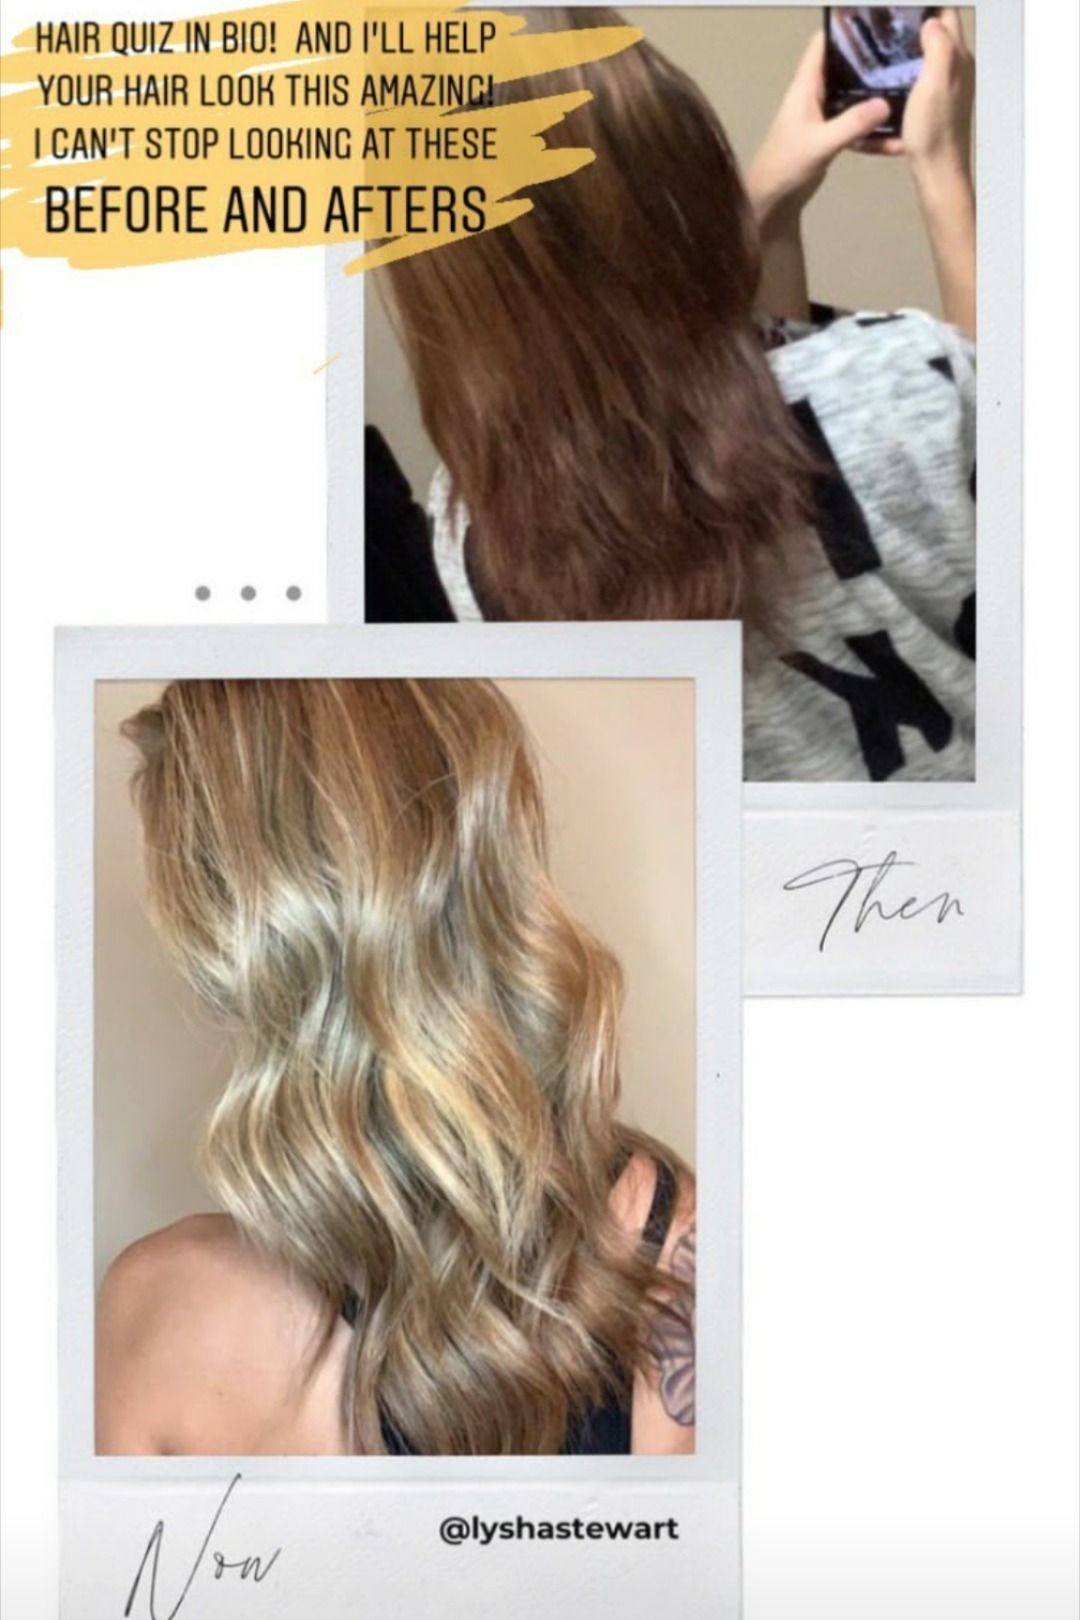 Monat Hair Before And After in 2020 Hair quiz, Hair